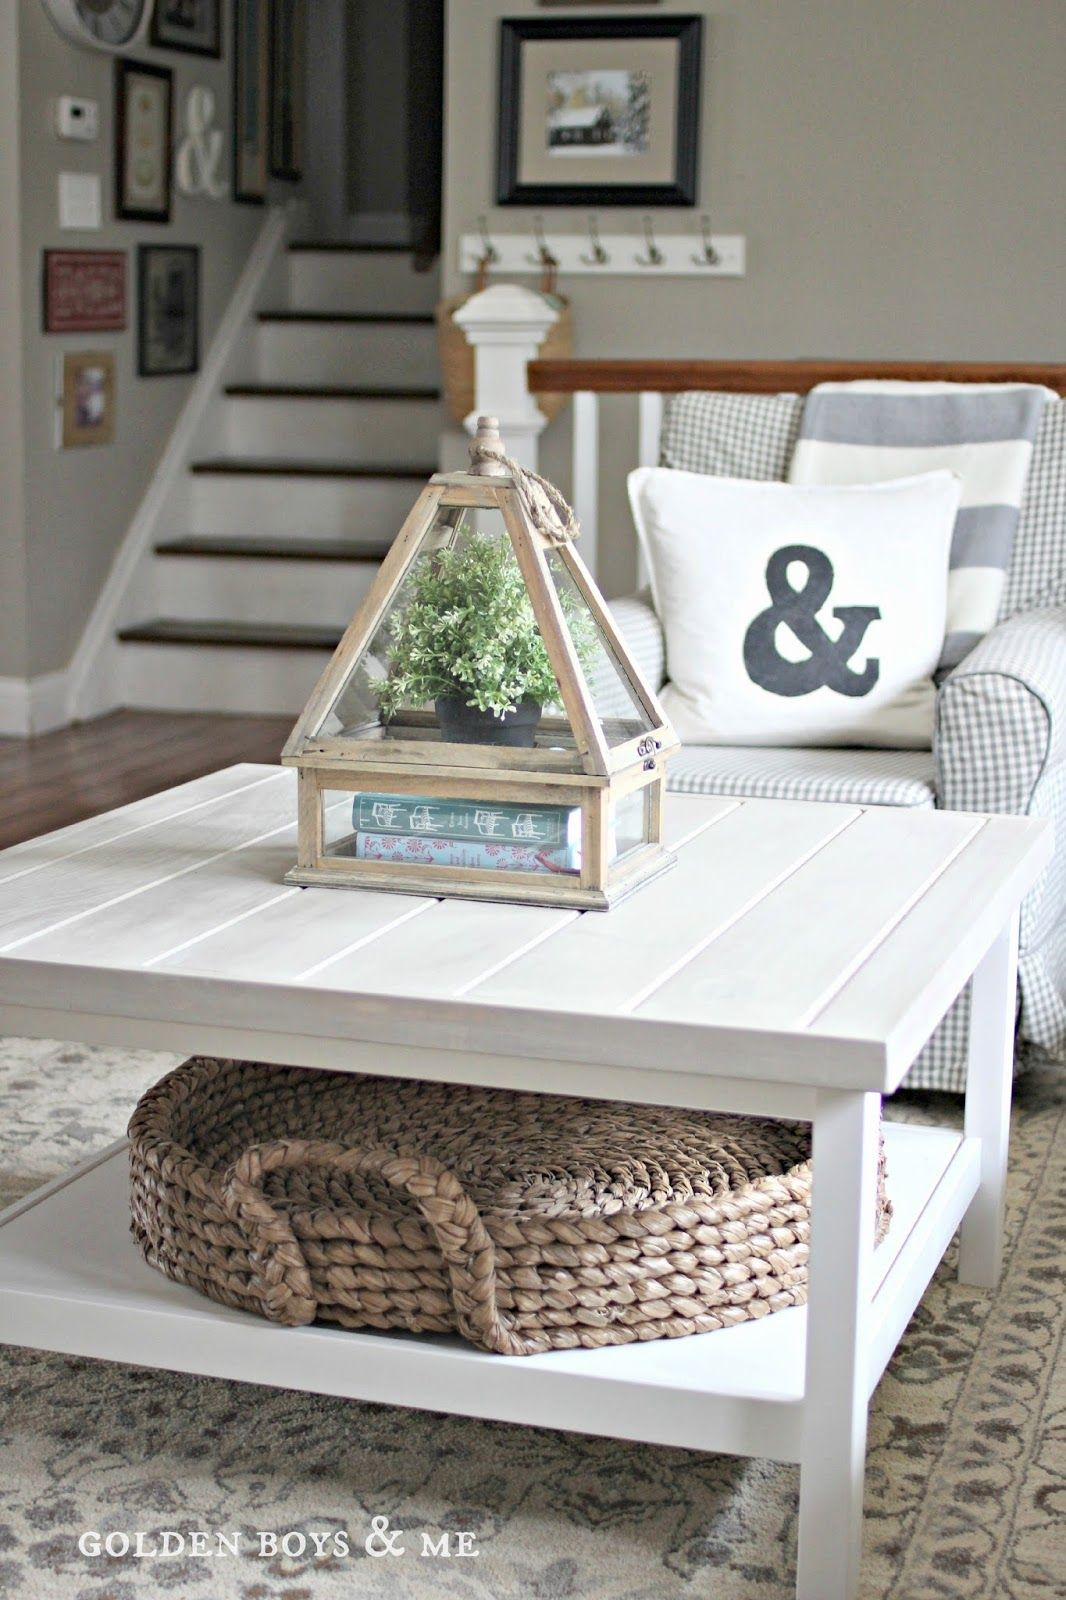 Ikea Hack Hemnes Coffee Table With Planked Top And Pottery Barn Beachcomber Round Tray Goldenboysandme